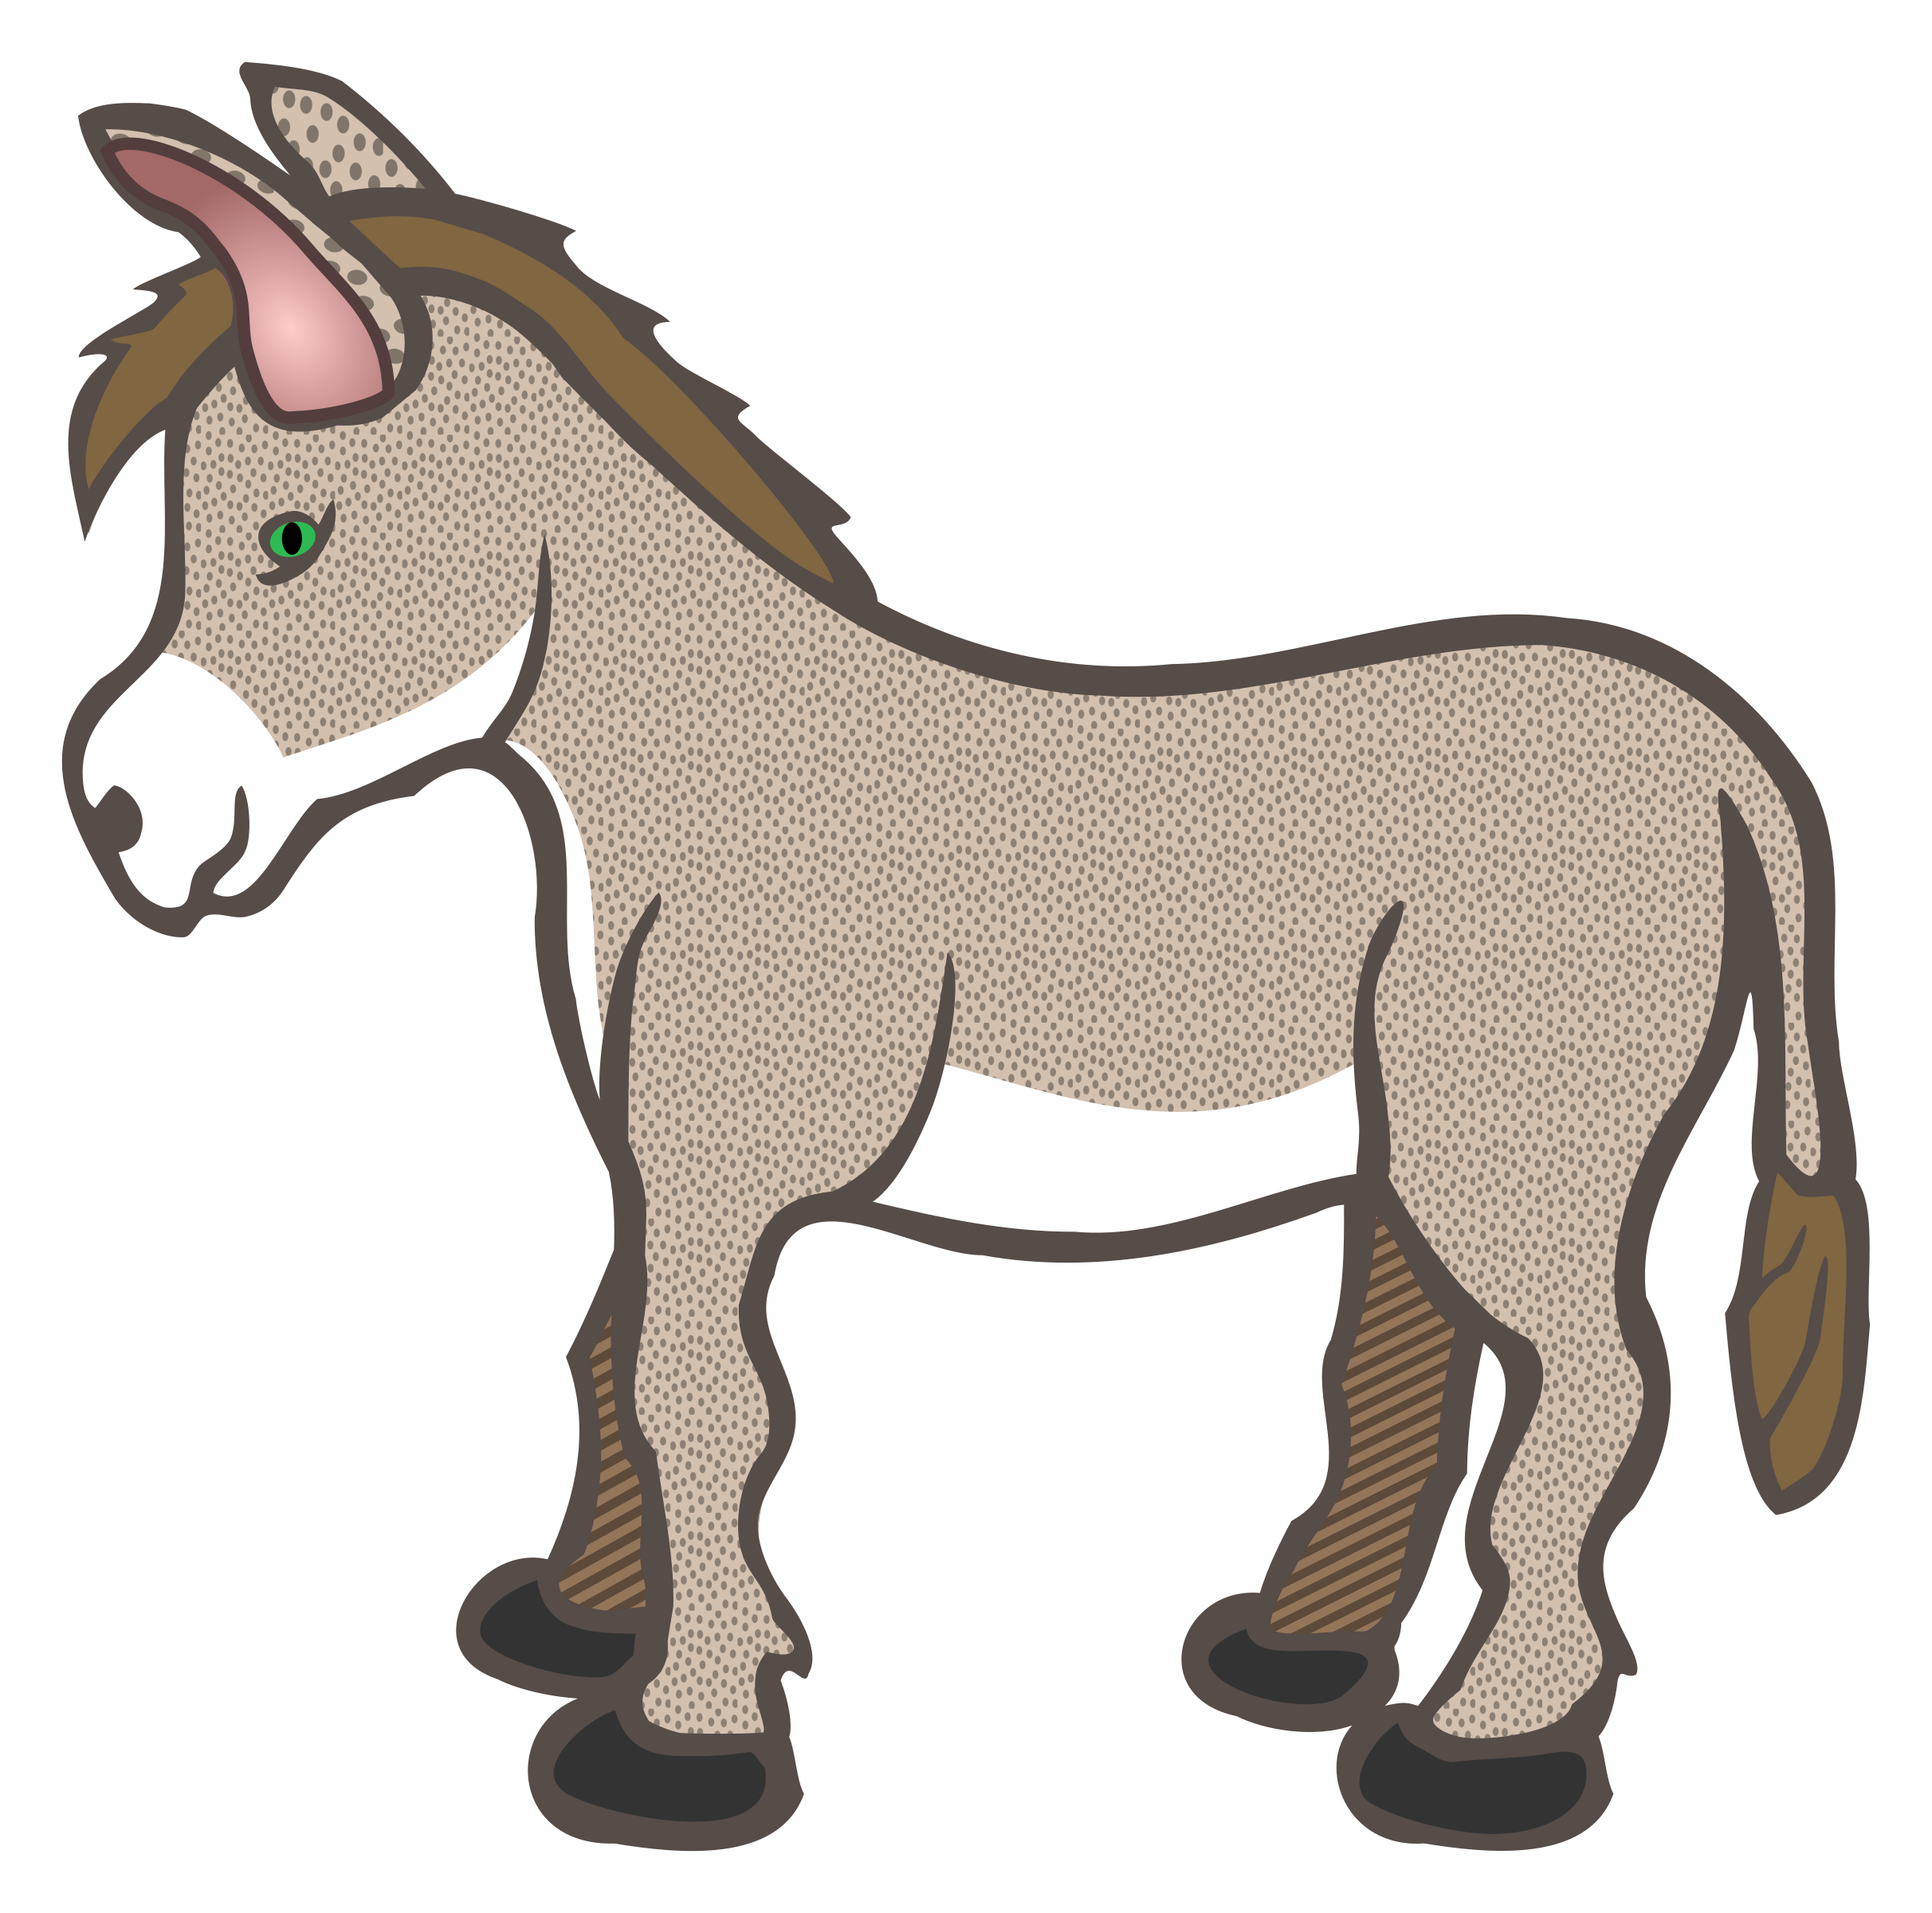 Donkey basketball clipart images vector royalty free download Donkey Clipart - Resolution: 2424x2400px | Рисунки | Pinterest | Donkey vector royalty free download